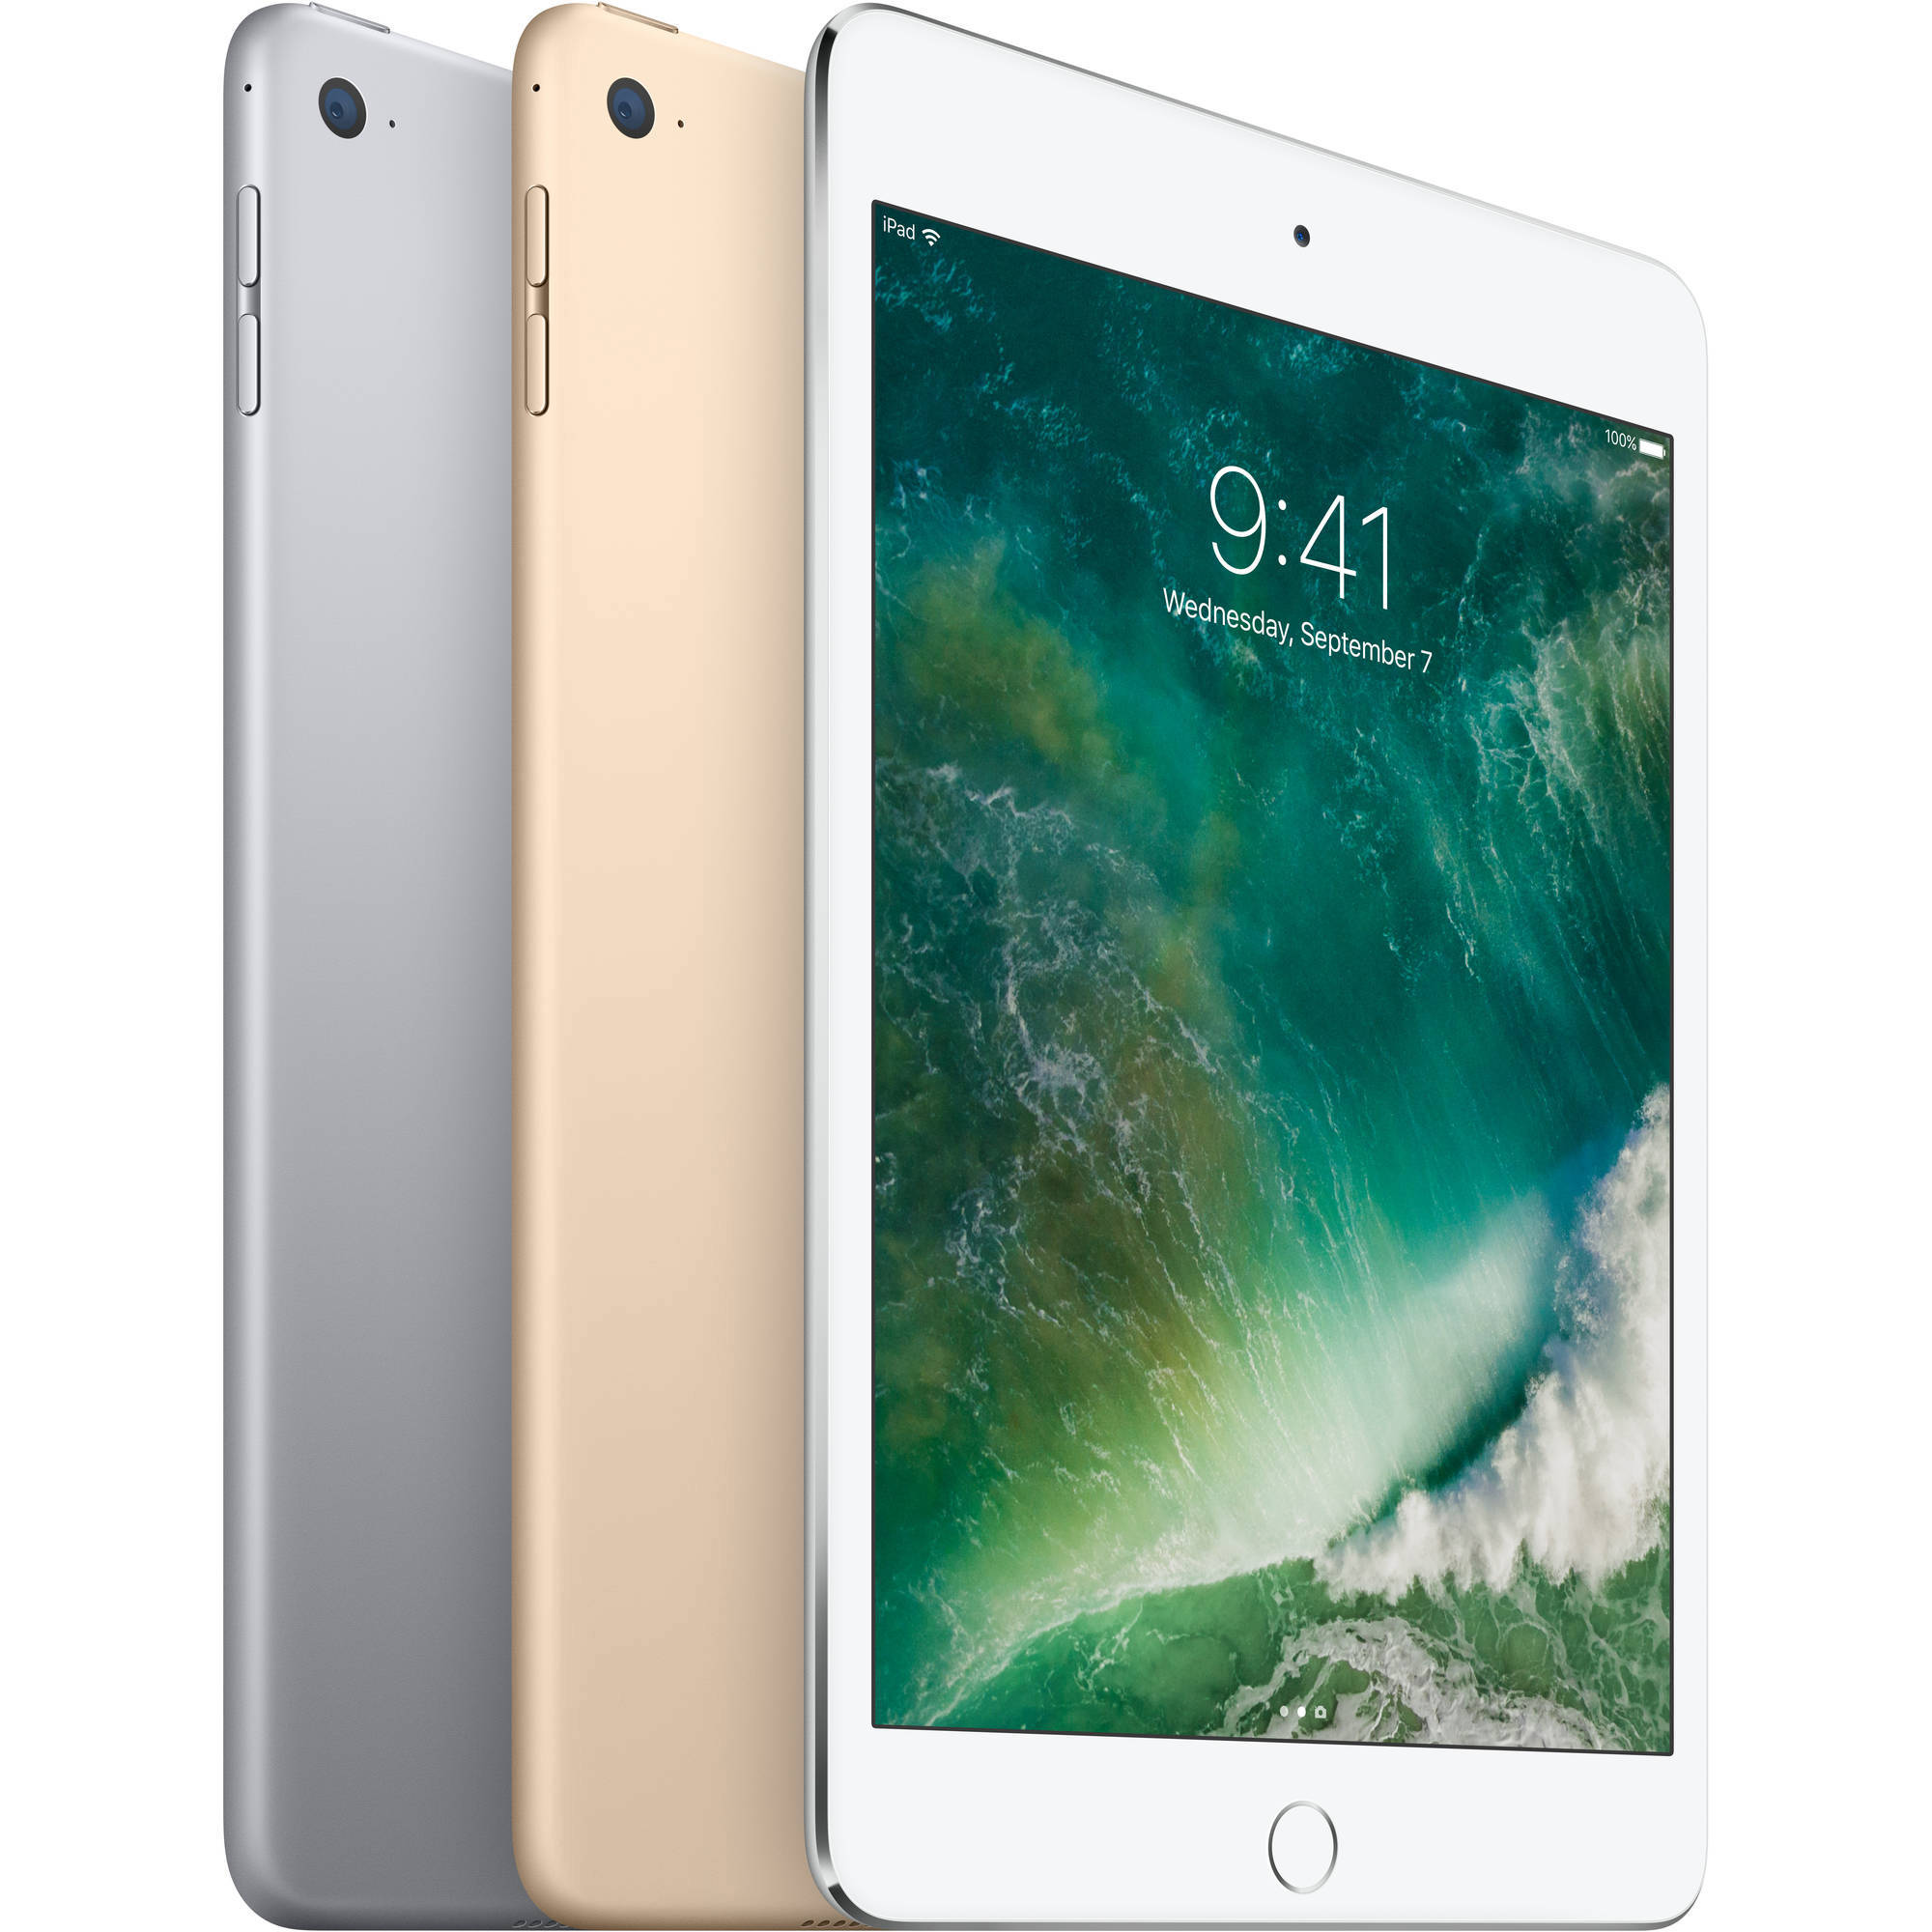 Apple iPad Mini 4 64GB Wi-Fi Refurbished